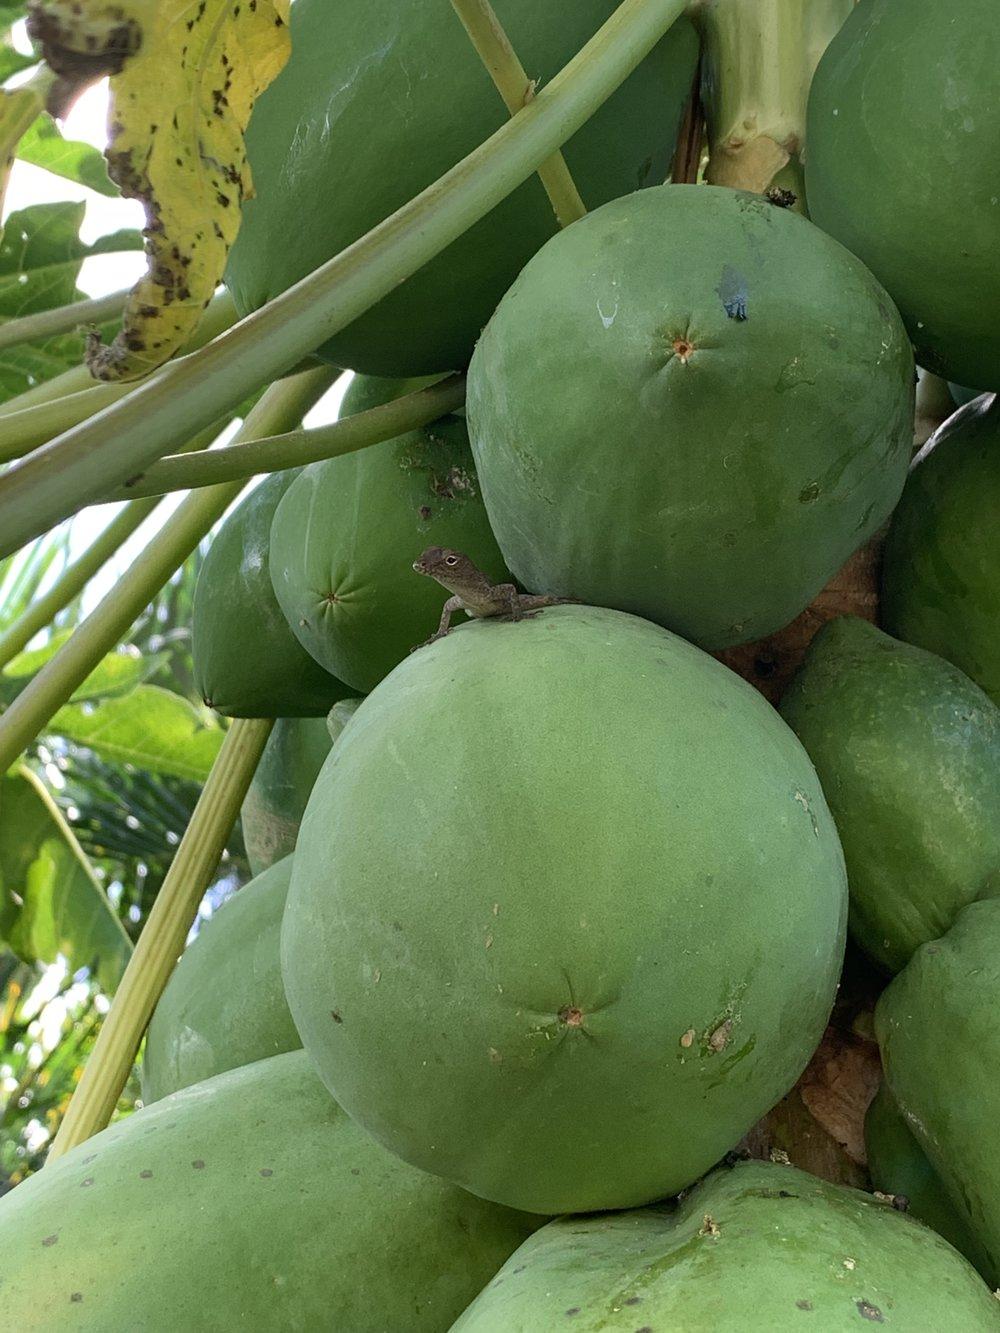 A friendly lizard hangs out on a papaya as they wait to get ripe.